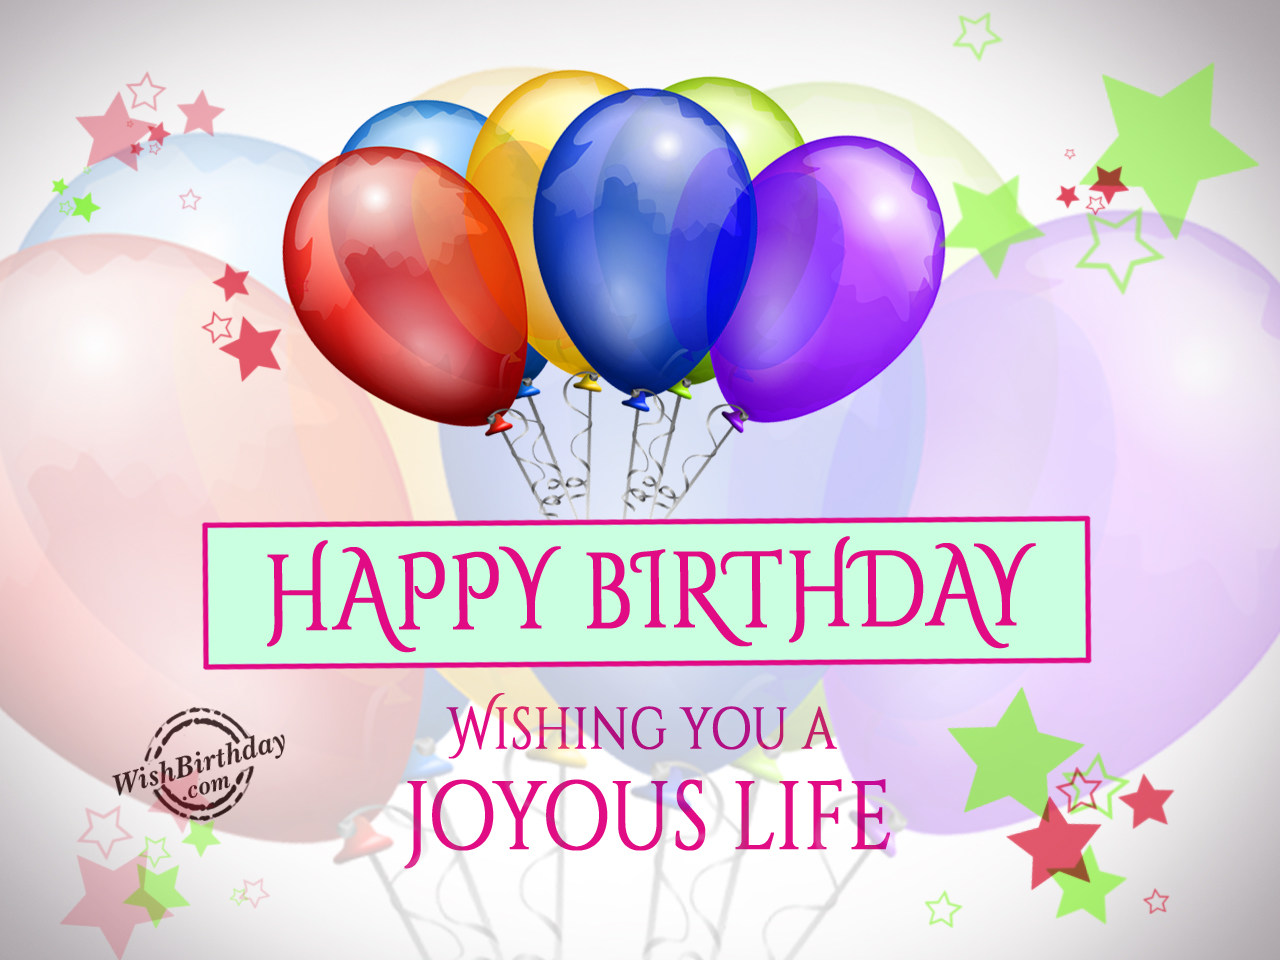 Happy Birthday Wishing You A Joyous Life Wishbirthday Com Wish You A Happy Birthday